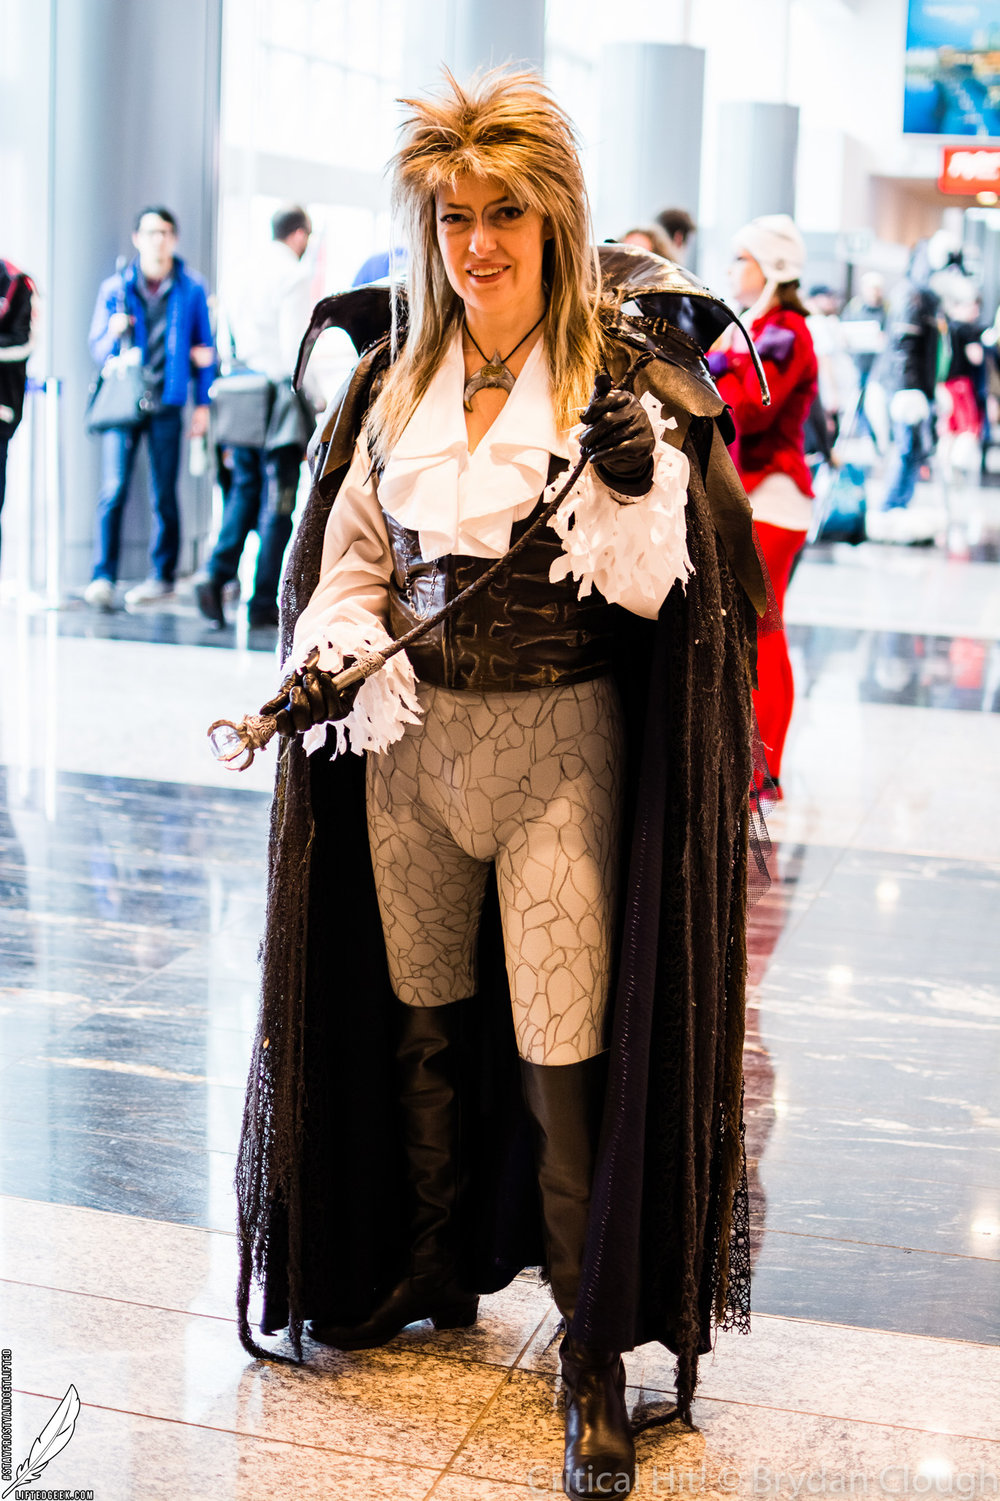 halloween expo cosplay contest 2016-81.jpg